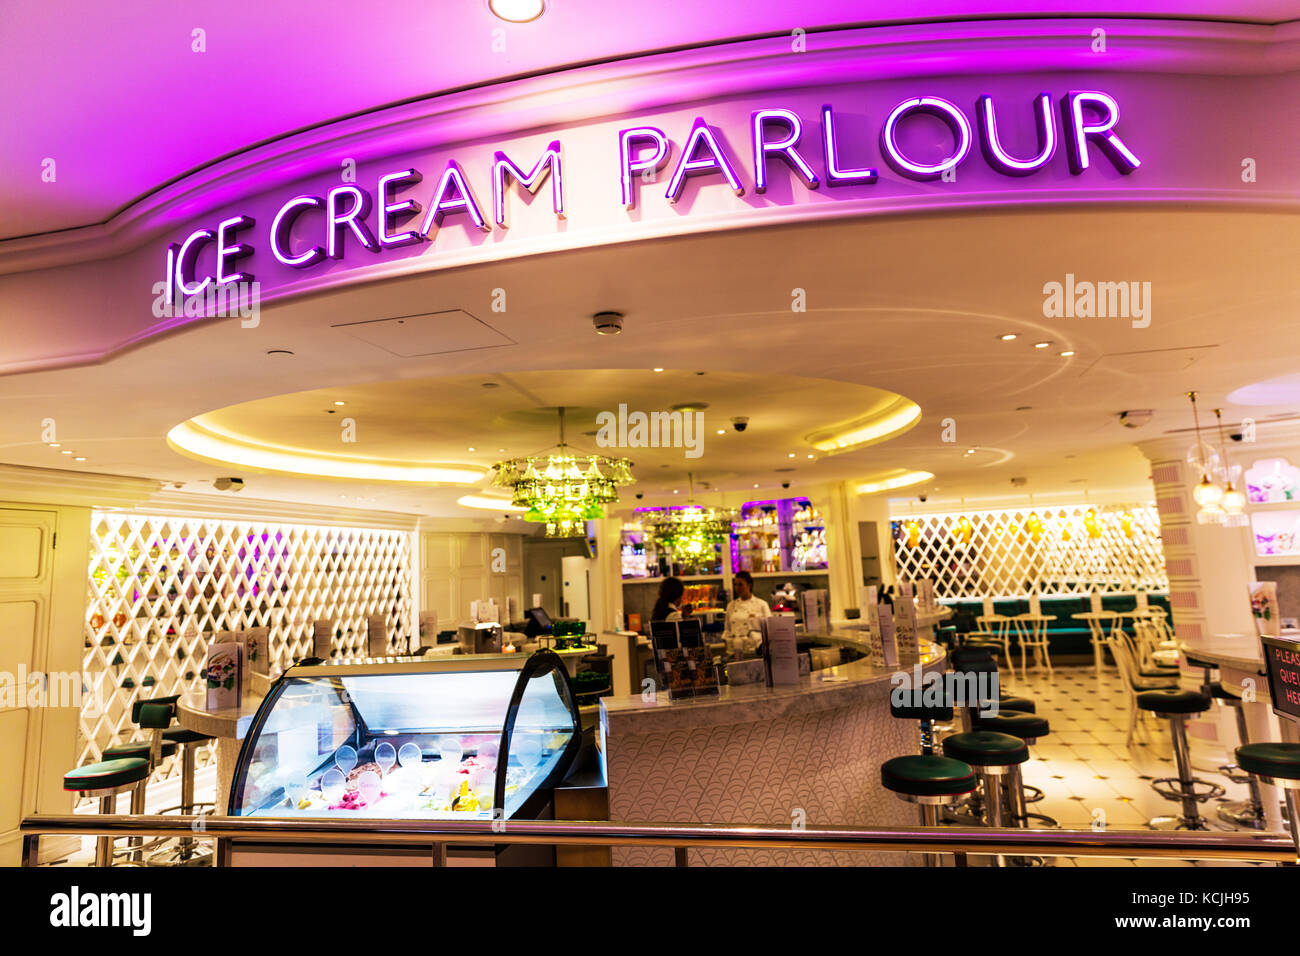 Ice Cream Parlour Stock Photos Ice Cream Parlour Stock Images Alamy